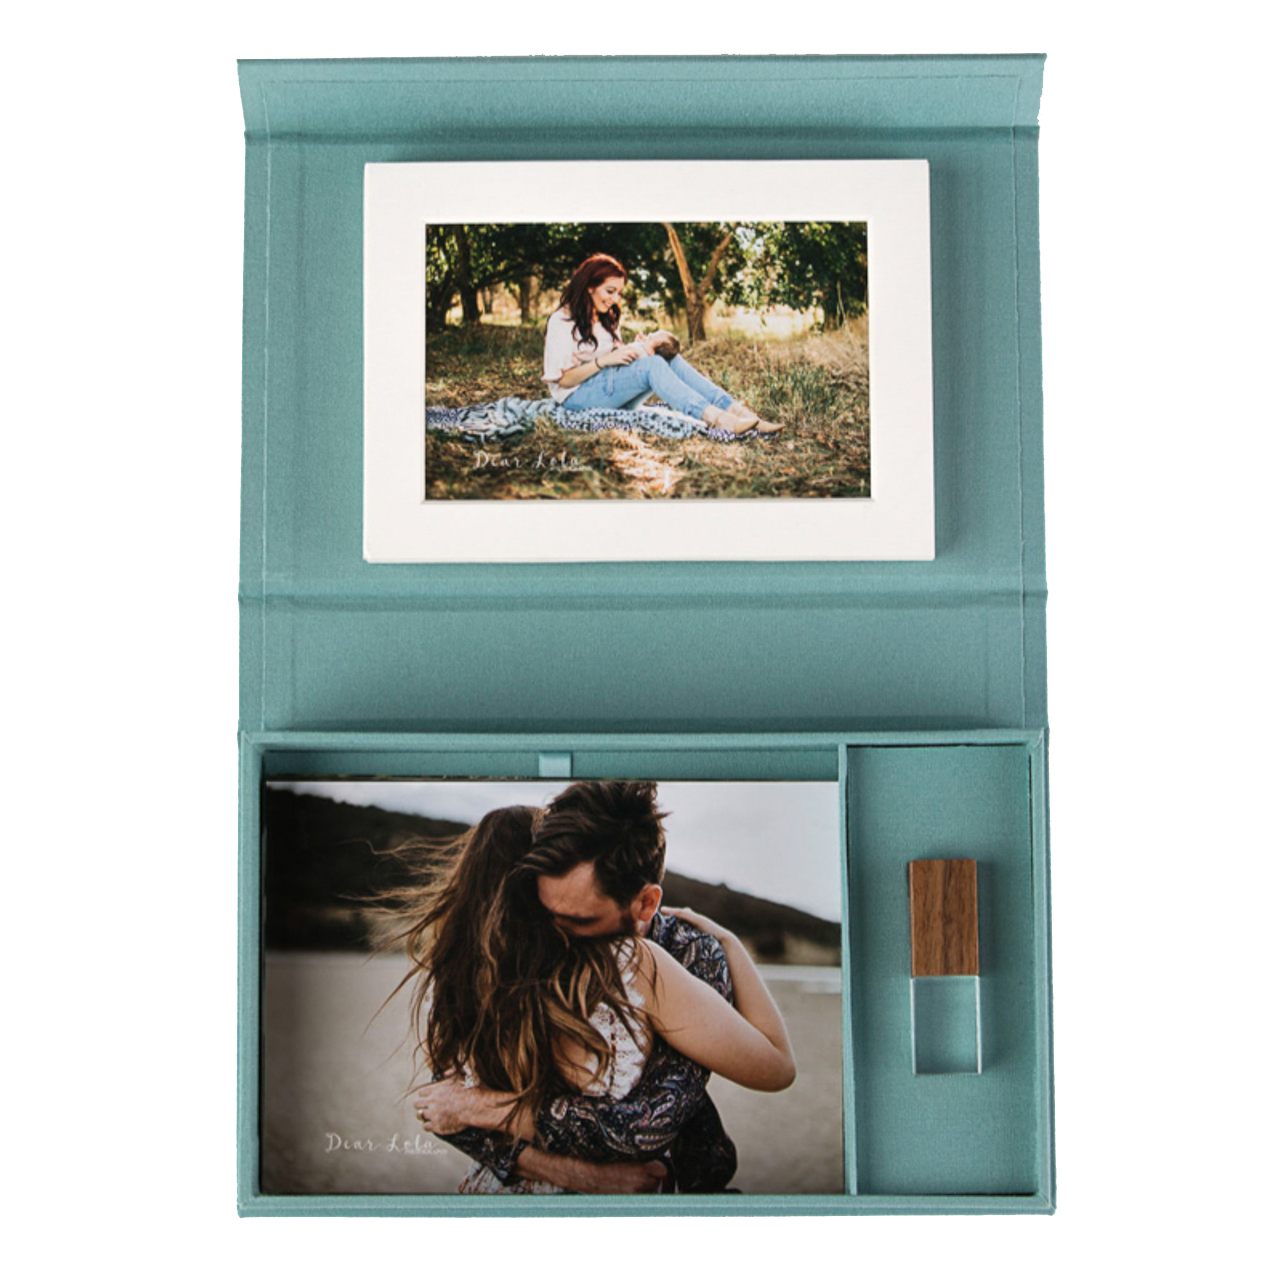 - In addition to the Modest Package, you'll receive 50 of your images (chosen by you) printed on 4